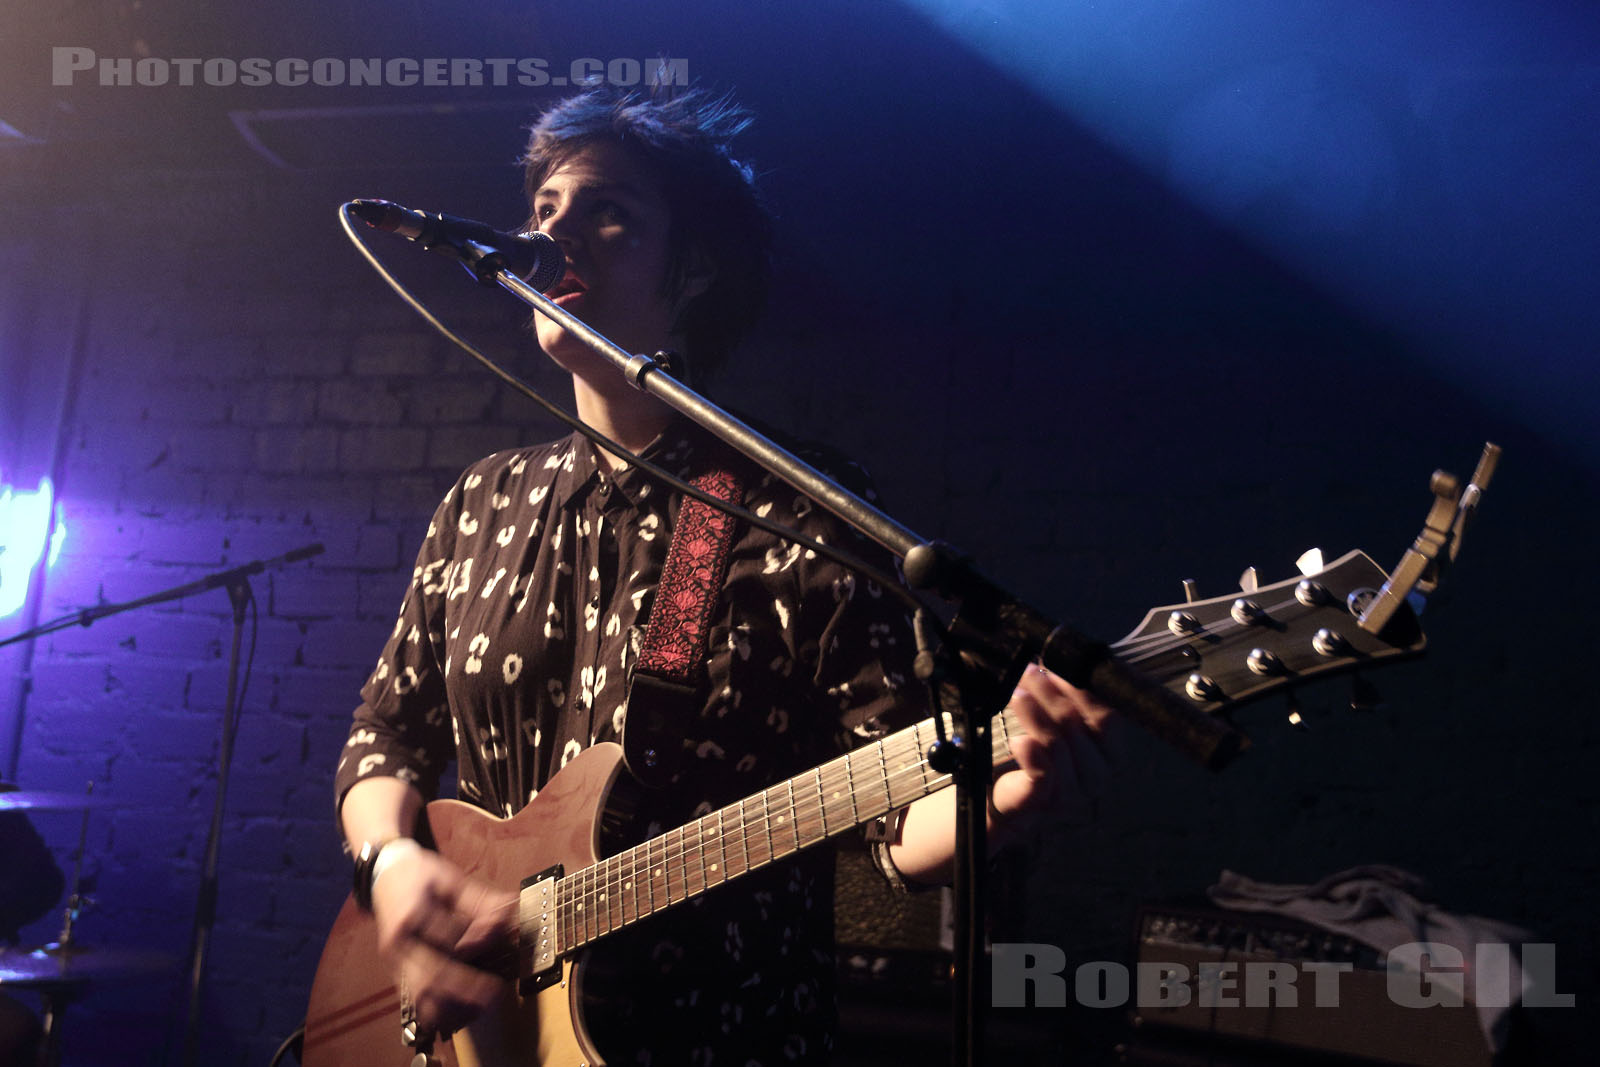 THE PACK A.D. - 2018-03-16 - PARIS - La Chaufferie (du Moulin Rouge)